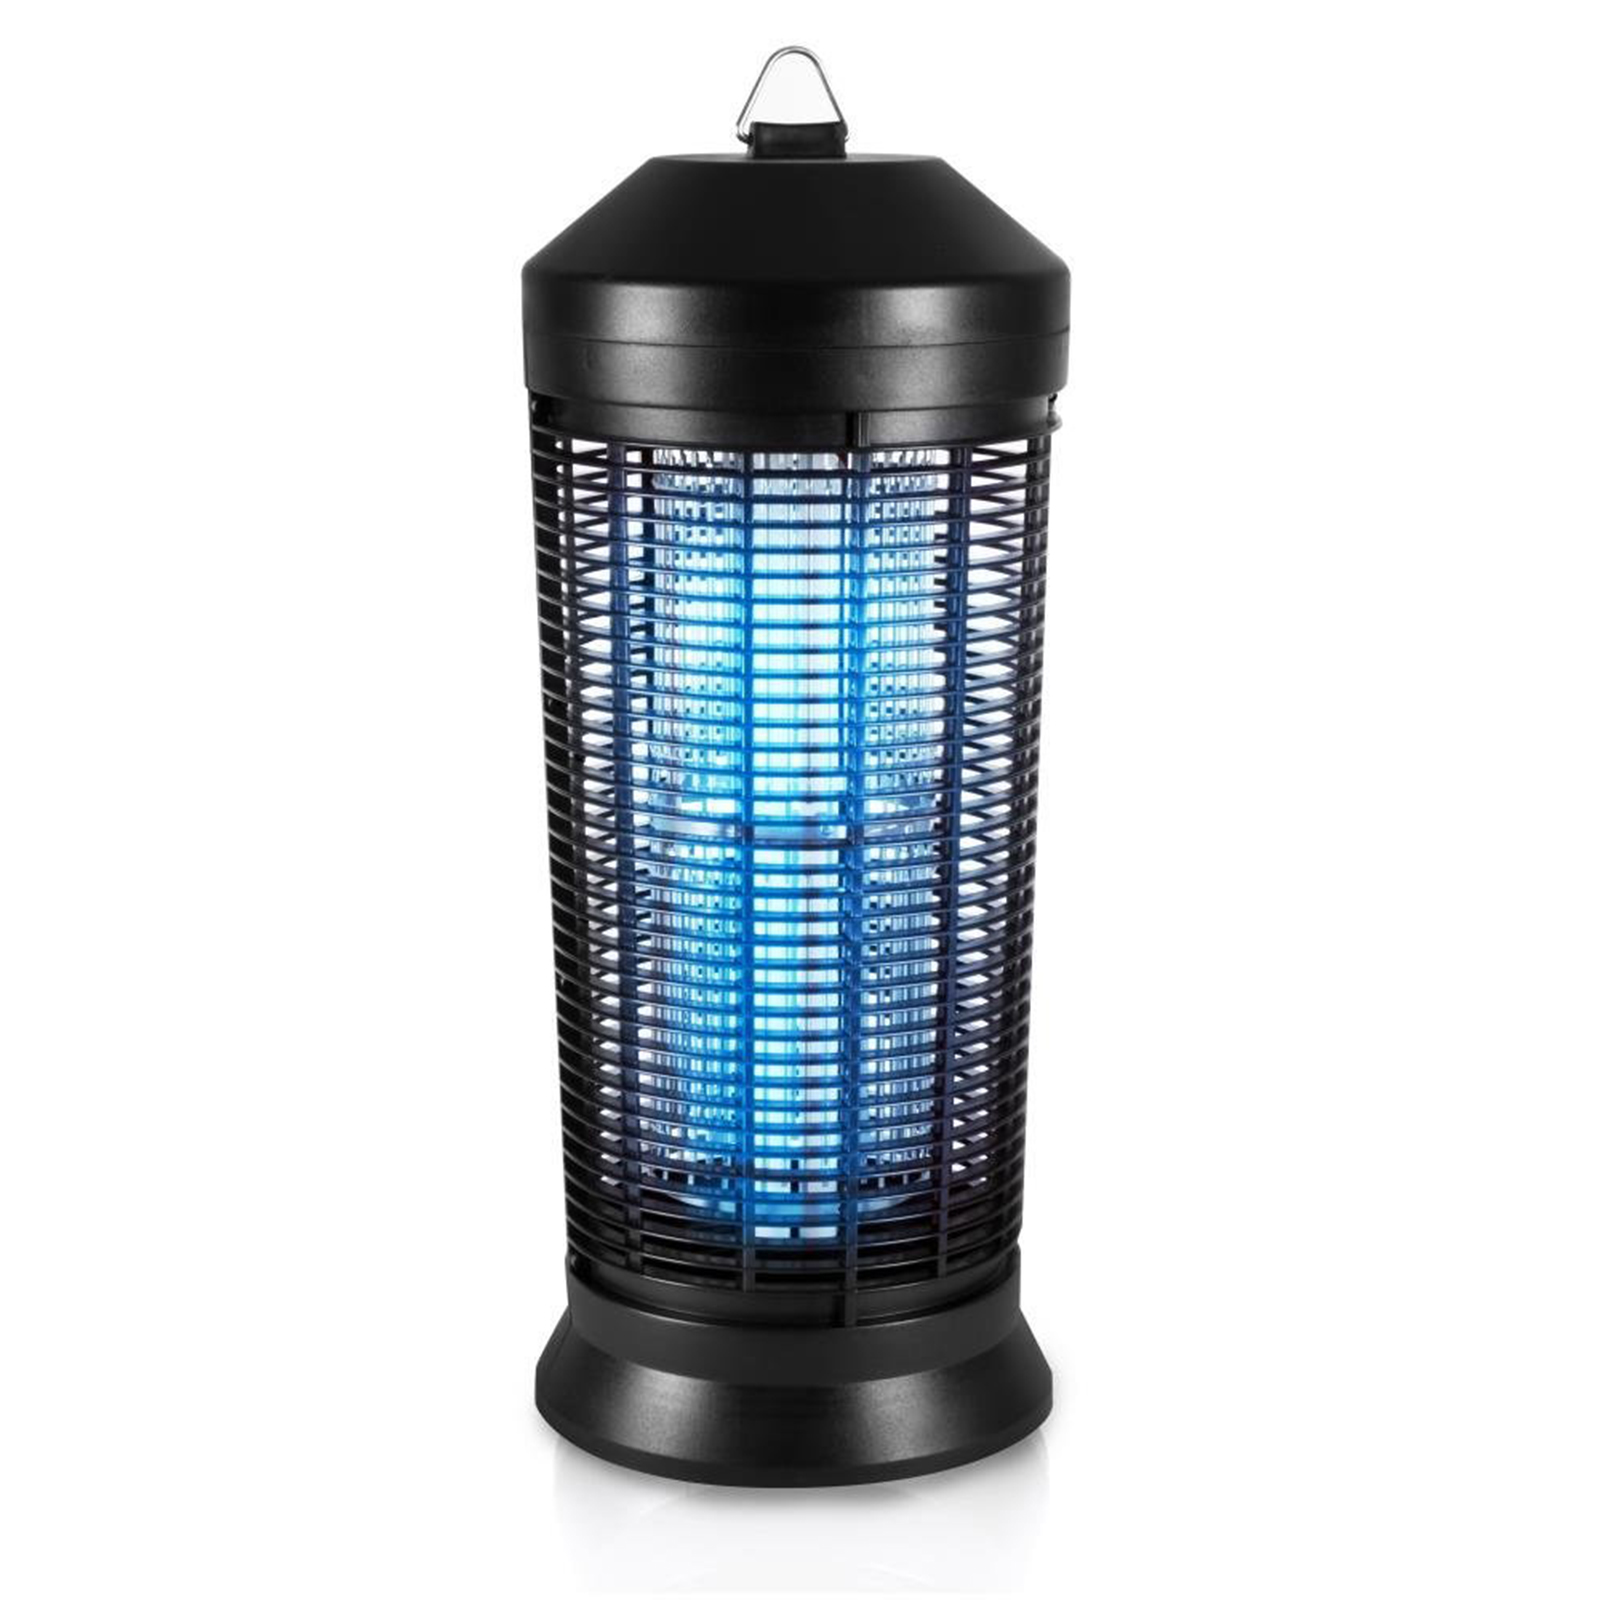 SereneLife Electric Bug Zapper - Fly & Mosquito Killer, Insect Eliminator or Flying Bug Trap Weather Resistant Electronic Lamp Plug In with UV Light for Home, Indoor and Outdoor Use